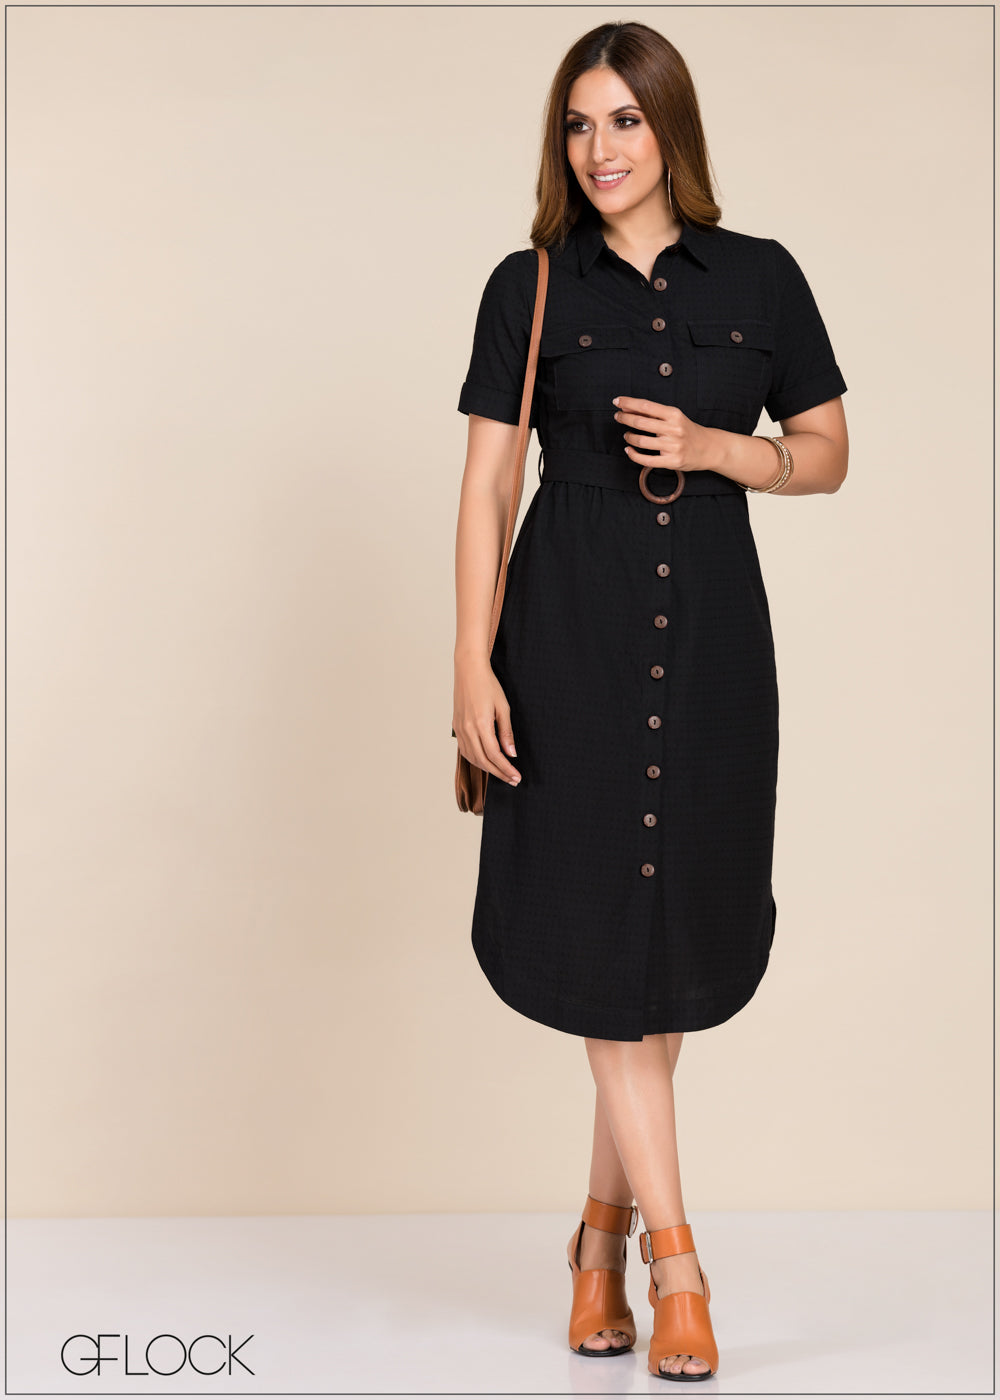 Waist Belted Dress - GFLOCK.LK